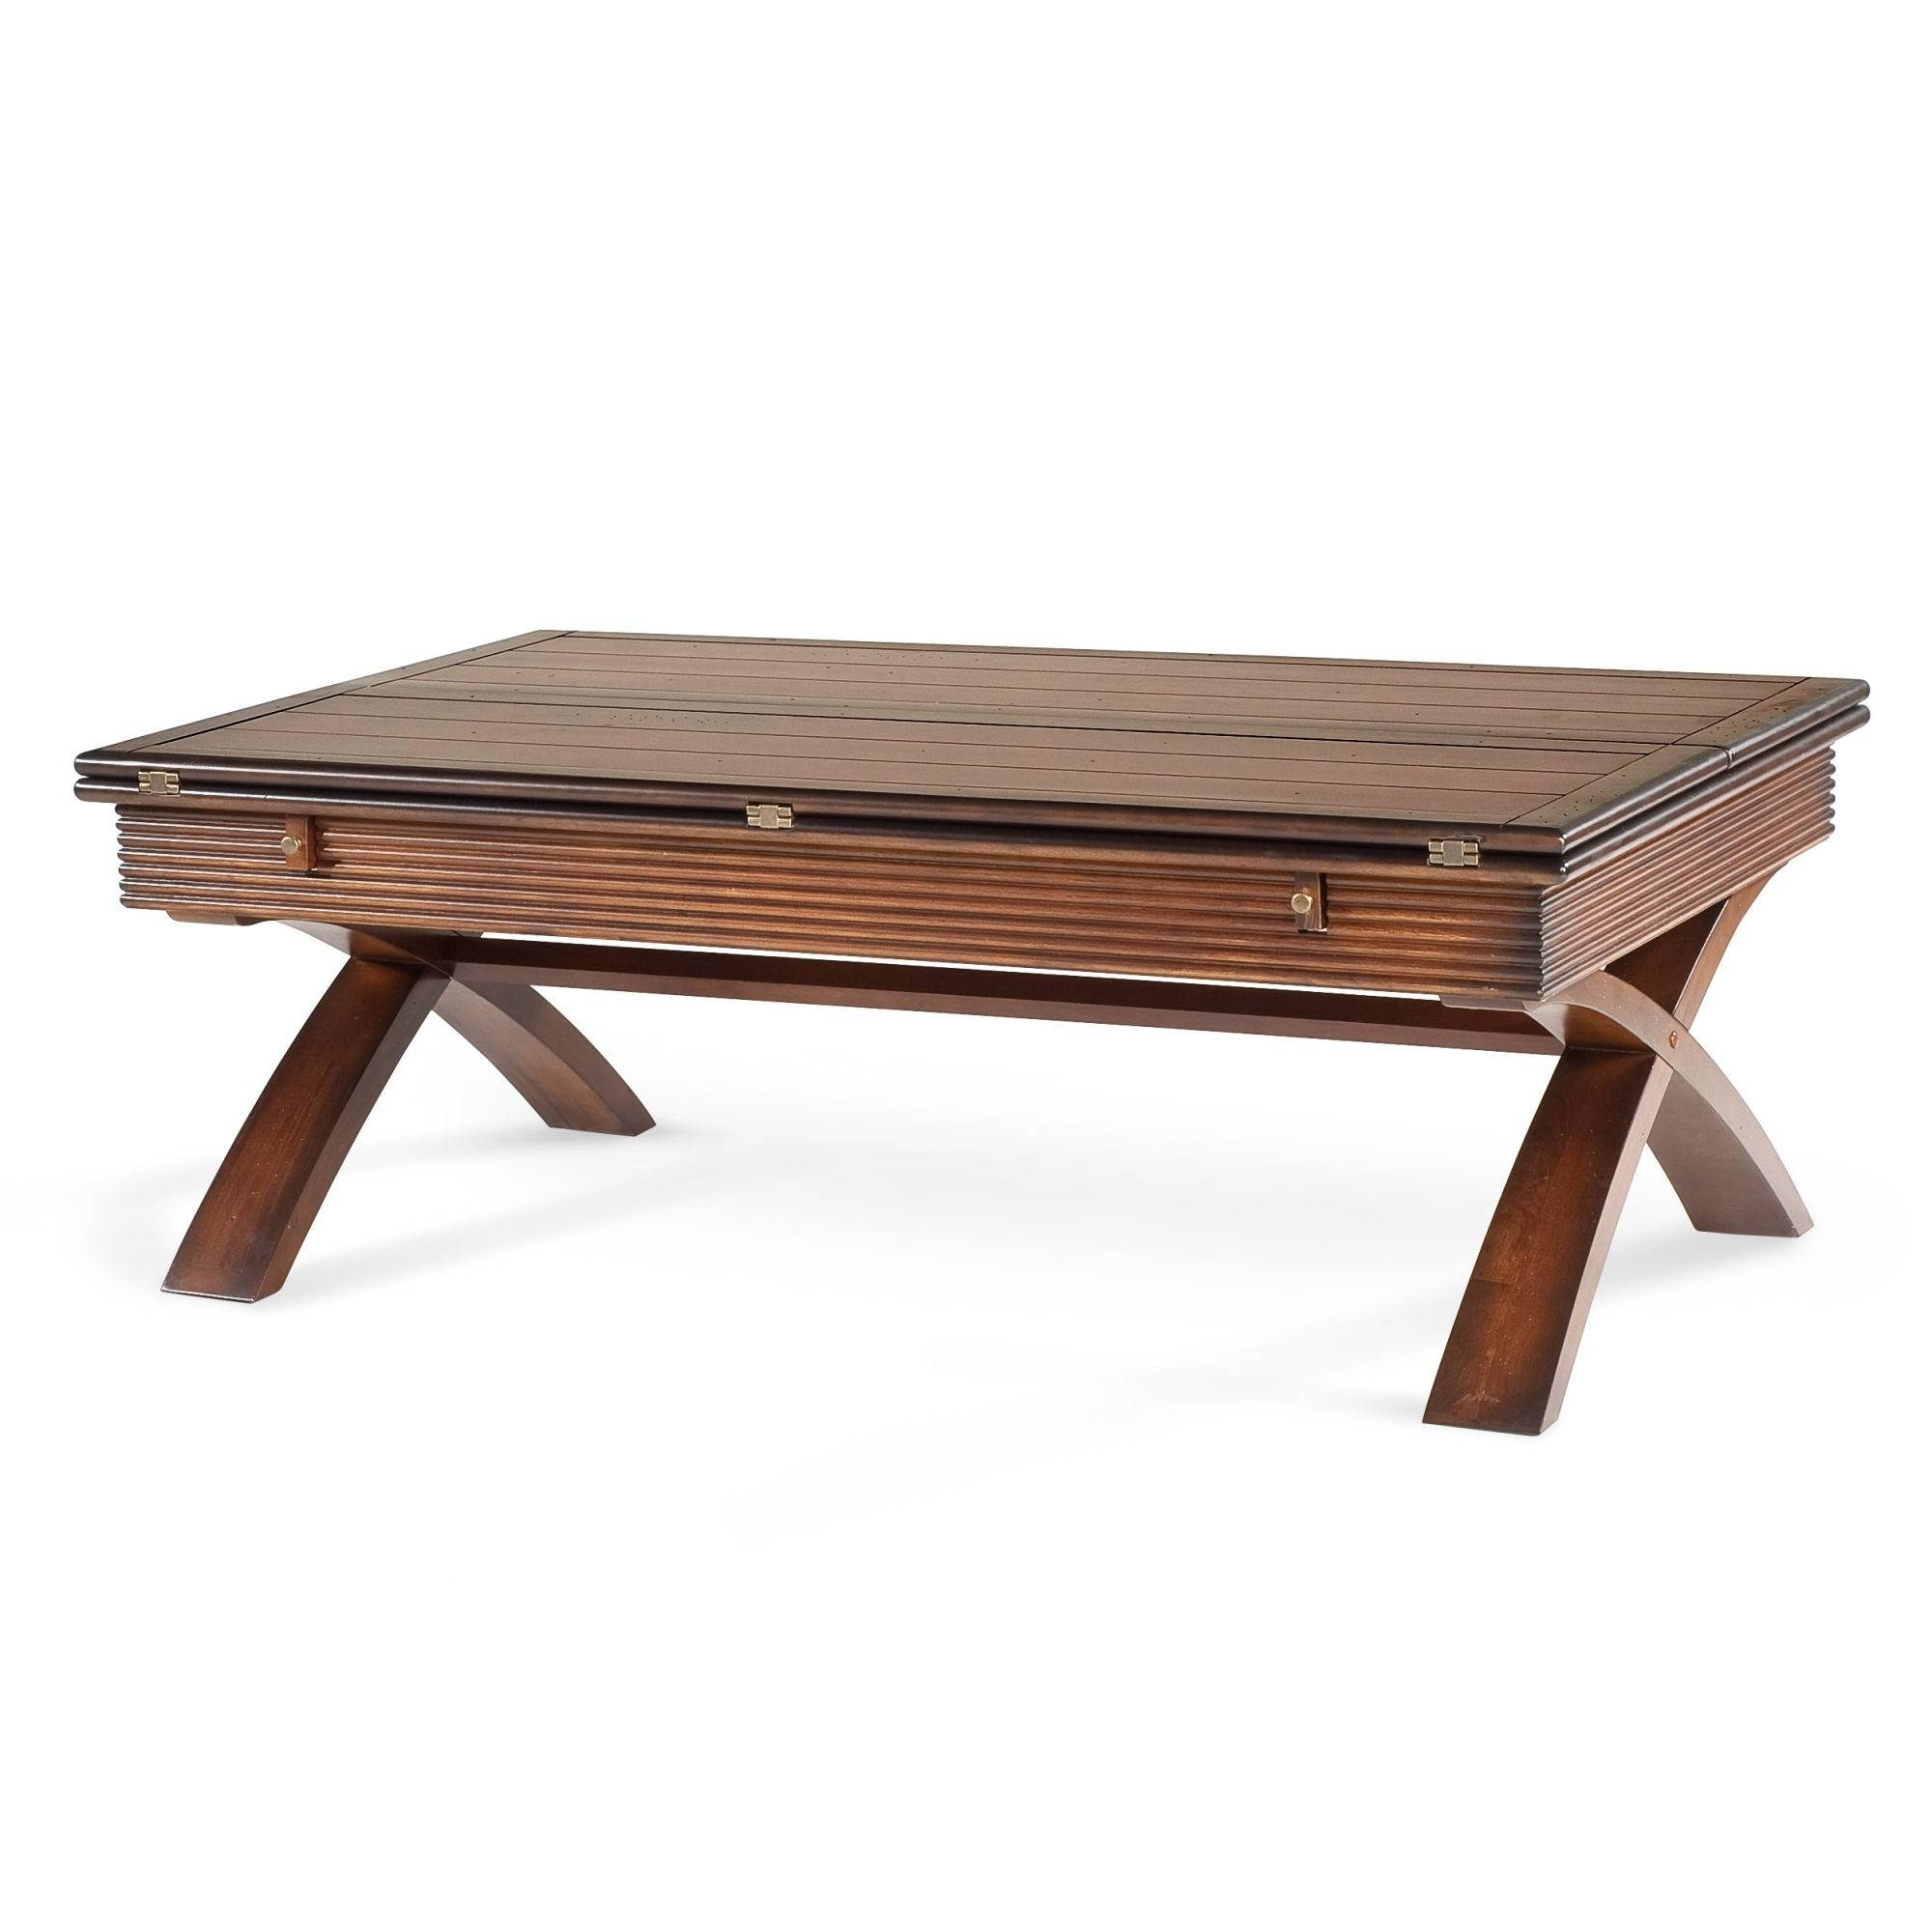 Magnussen Bali Collection Rectangular Flip Top Coffee Table - 48210 pertaining to Flip Top Coffee Tables (Image 19 of 30)